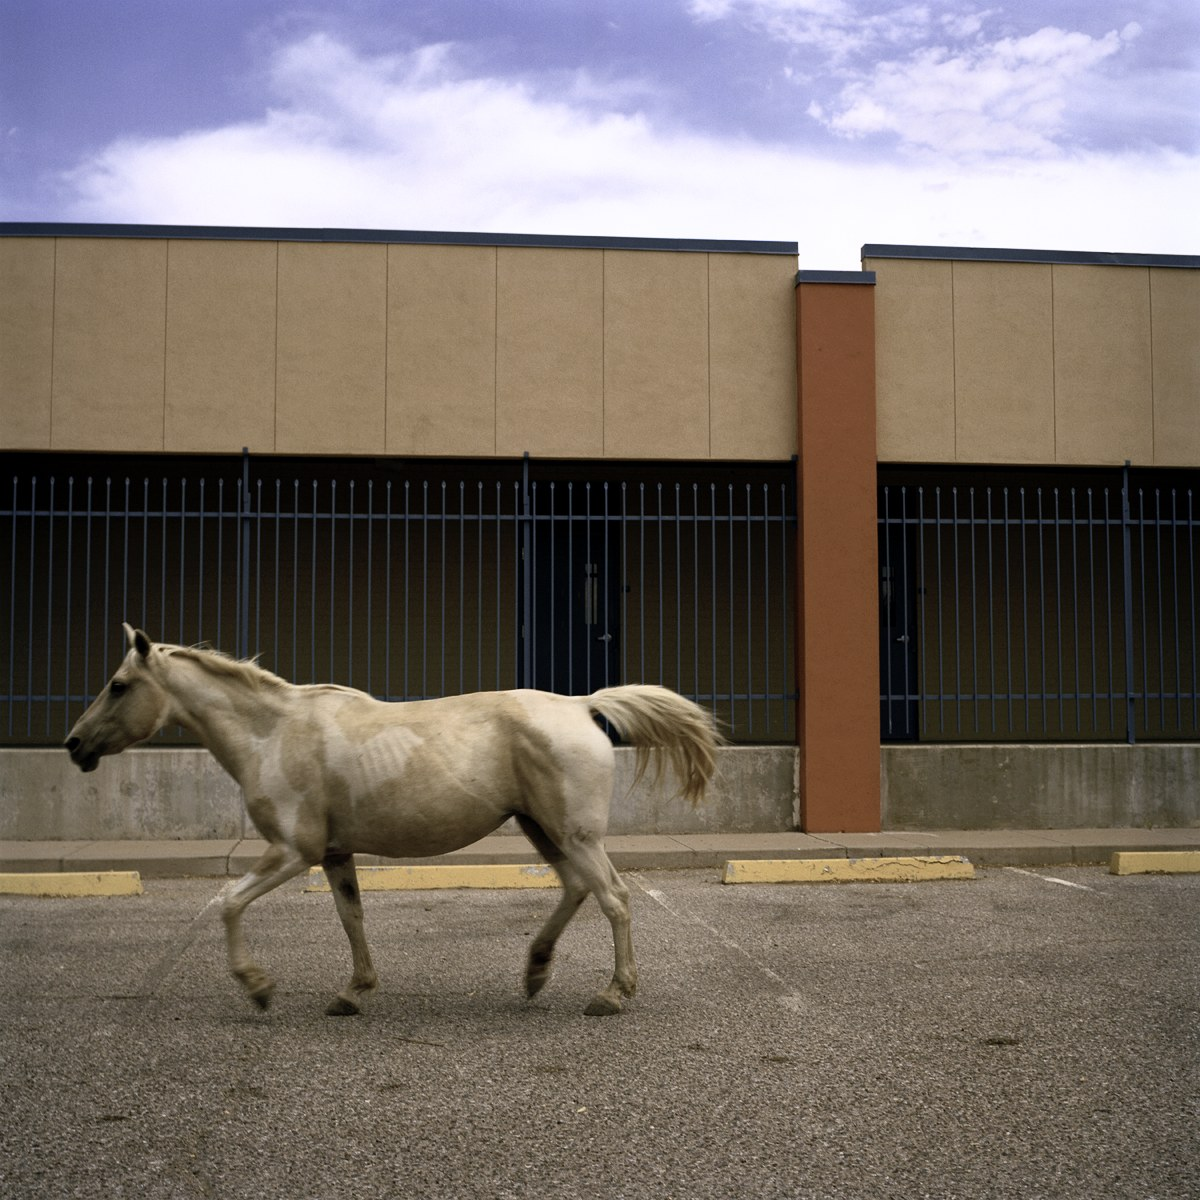 Town of horses, 2012